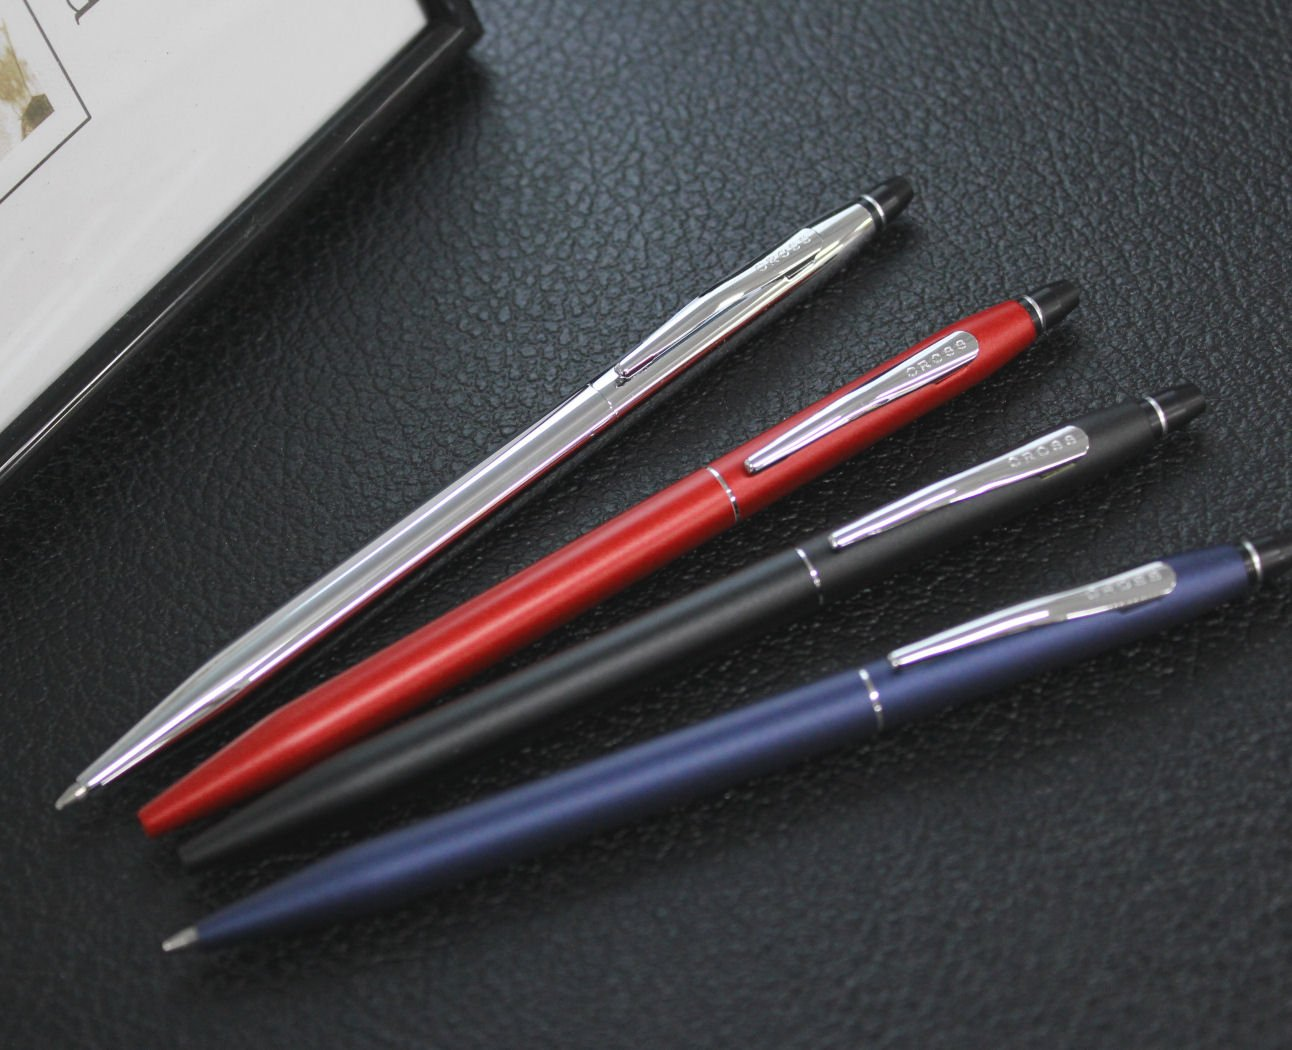 Cross Click Classic Black Ballpoint Pen with Chrome Appointments and Bonus Slim Gel Refill by Cross (Image #4)